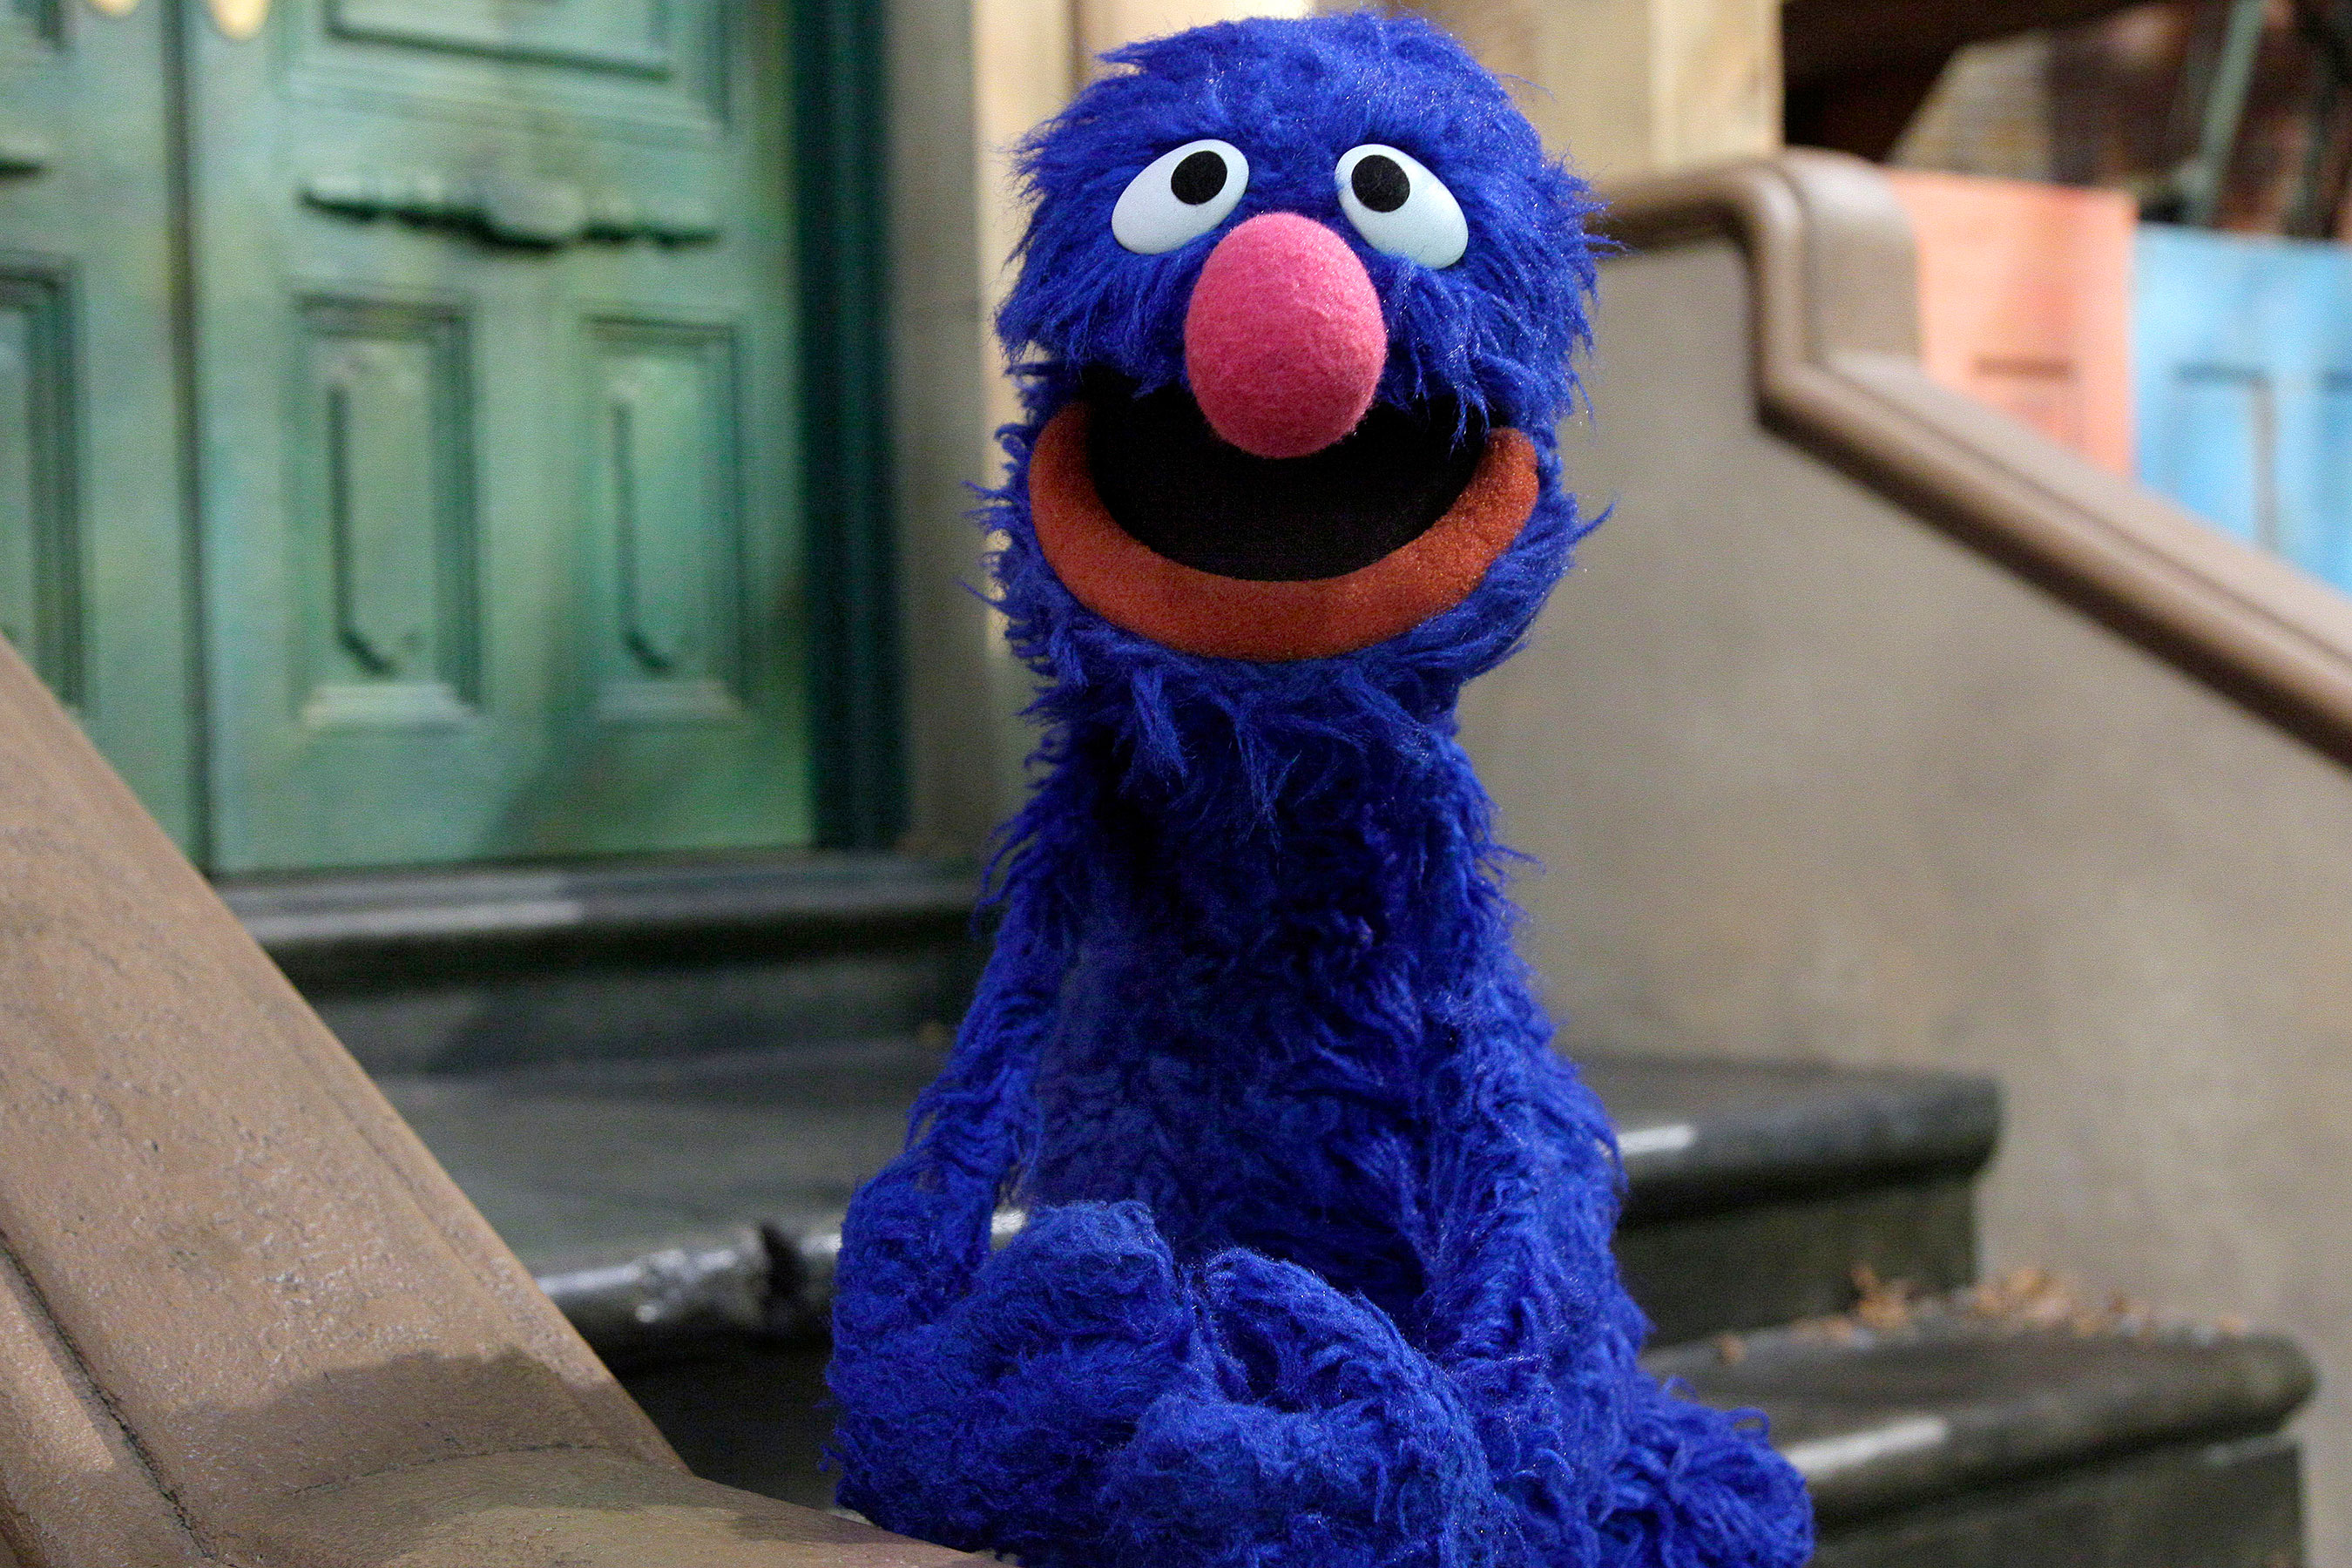 Sesame Street fans convinced Grover just dropped an f-bomb 10